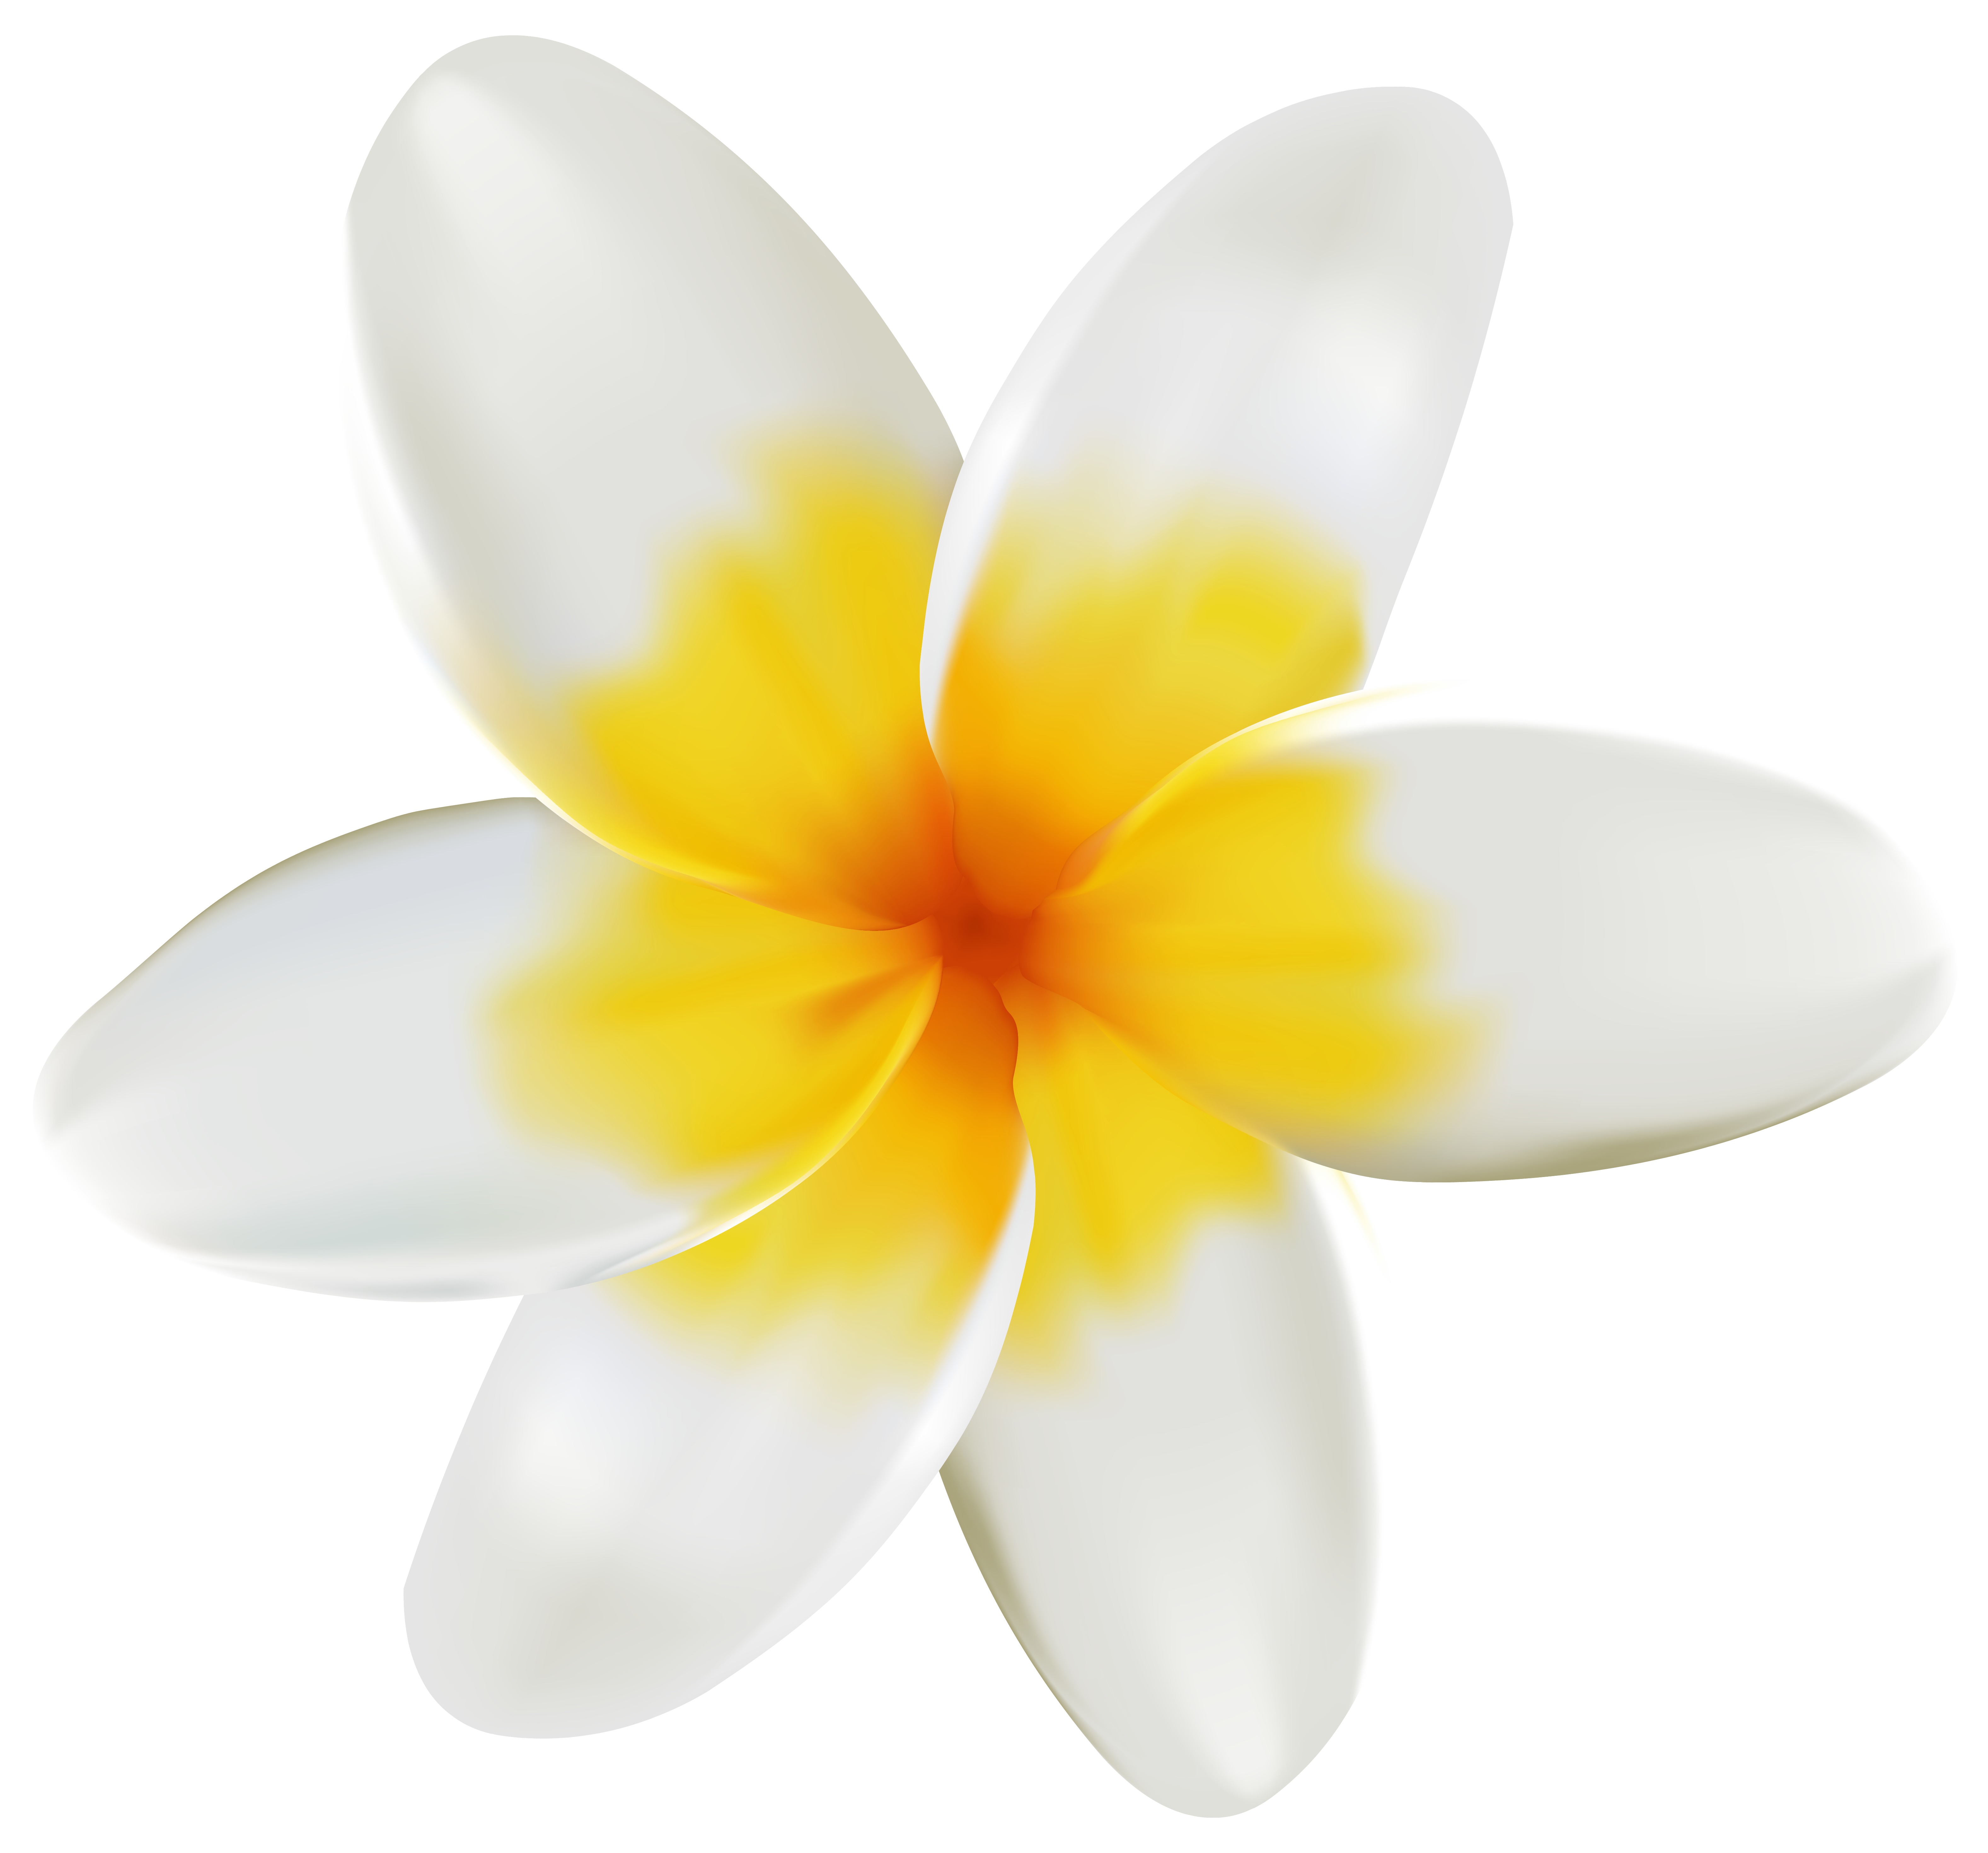 Plumeria clipart #1, Download drawings